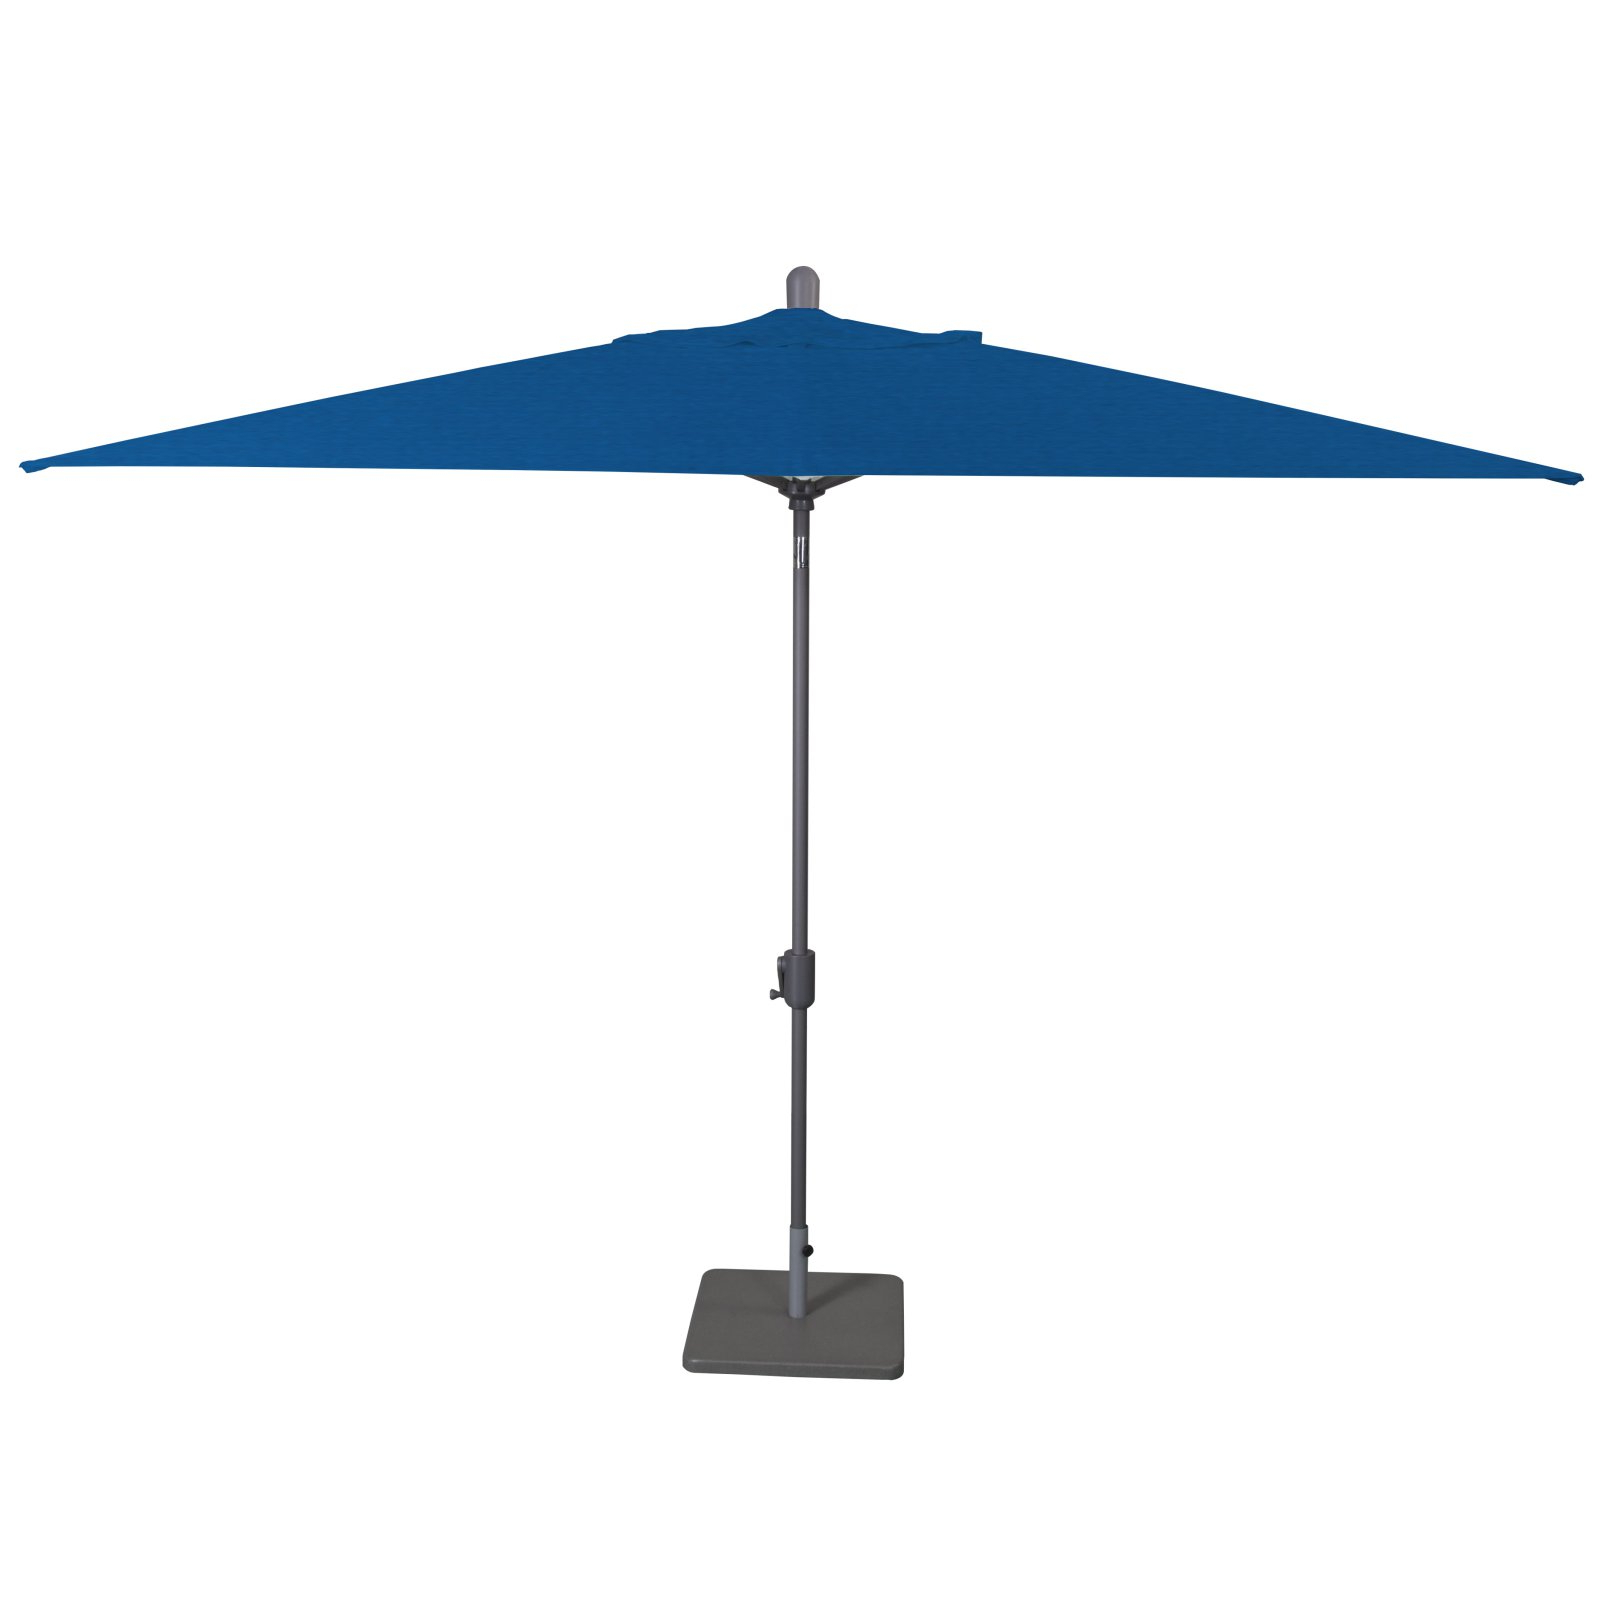 Mullaney Market Sunbrella Umbrellas Intended For Well Liked Amauri Laguna Cove 10 Ft. X 6.5 Ft. Rectangular Sunbrella Auto Tilt (Gallery 16 of 20)